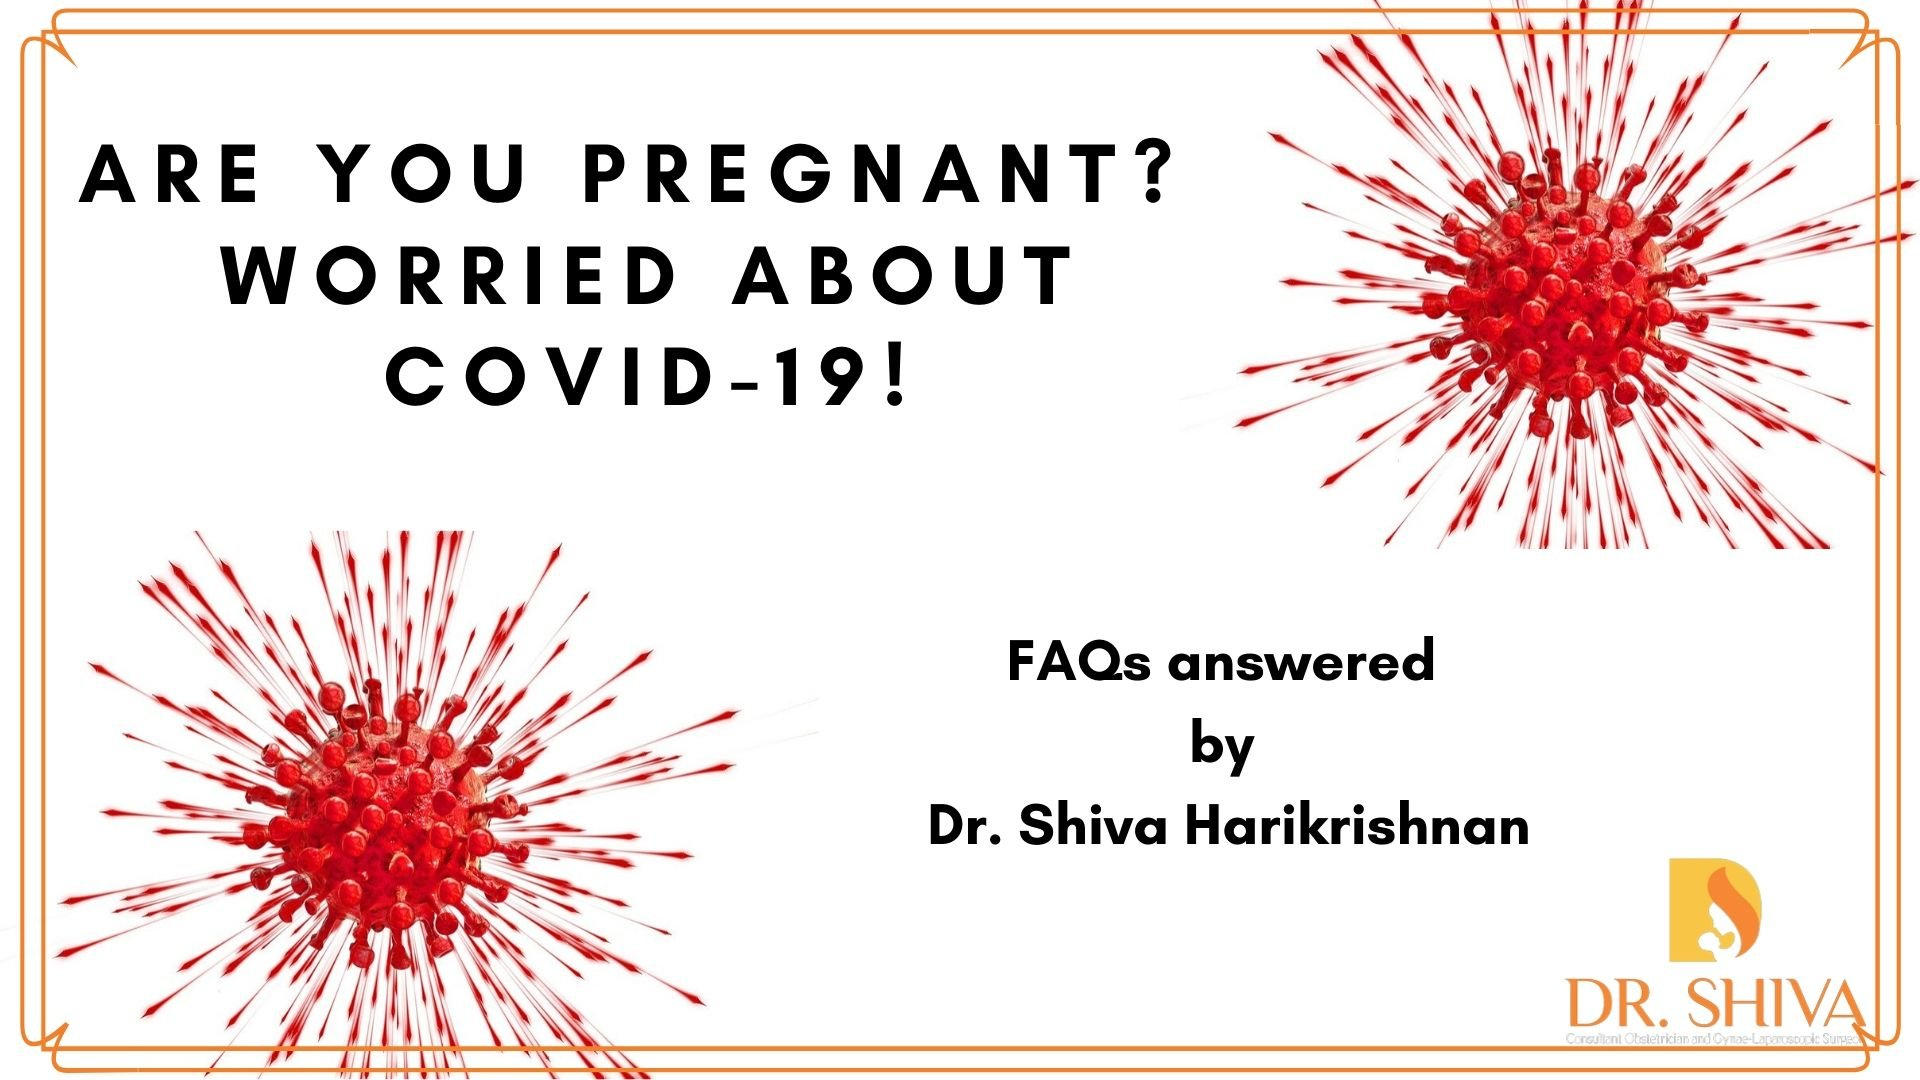 Are you Pregnant? Worried about COVID-19: FAQs – Answered by Dr. Shiva Harikrishnan